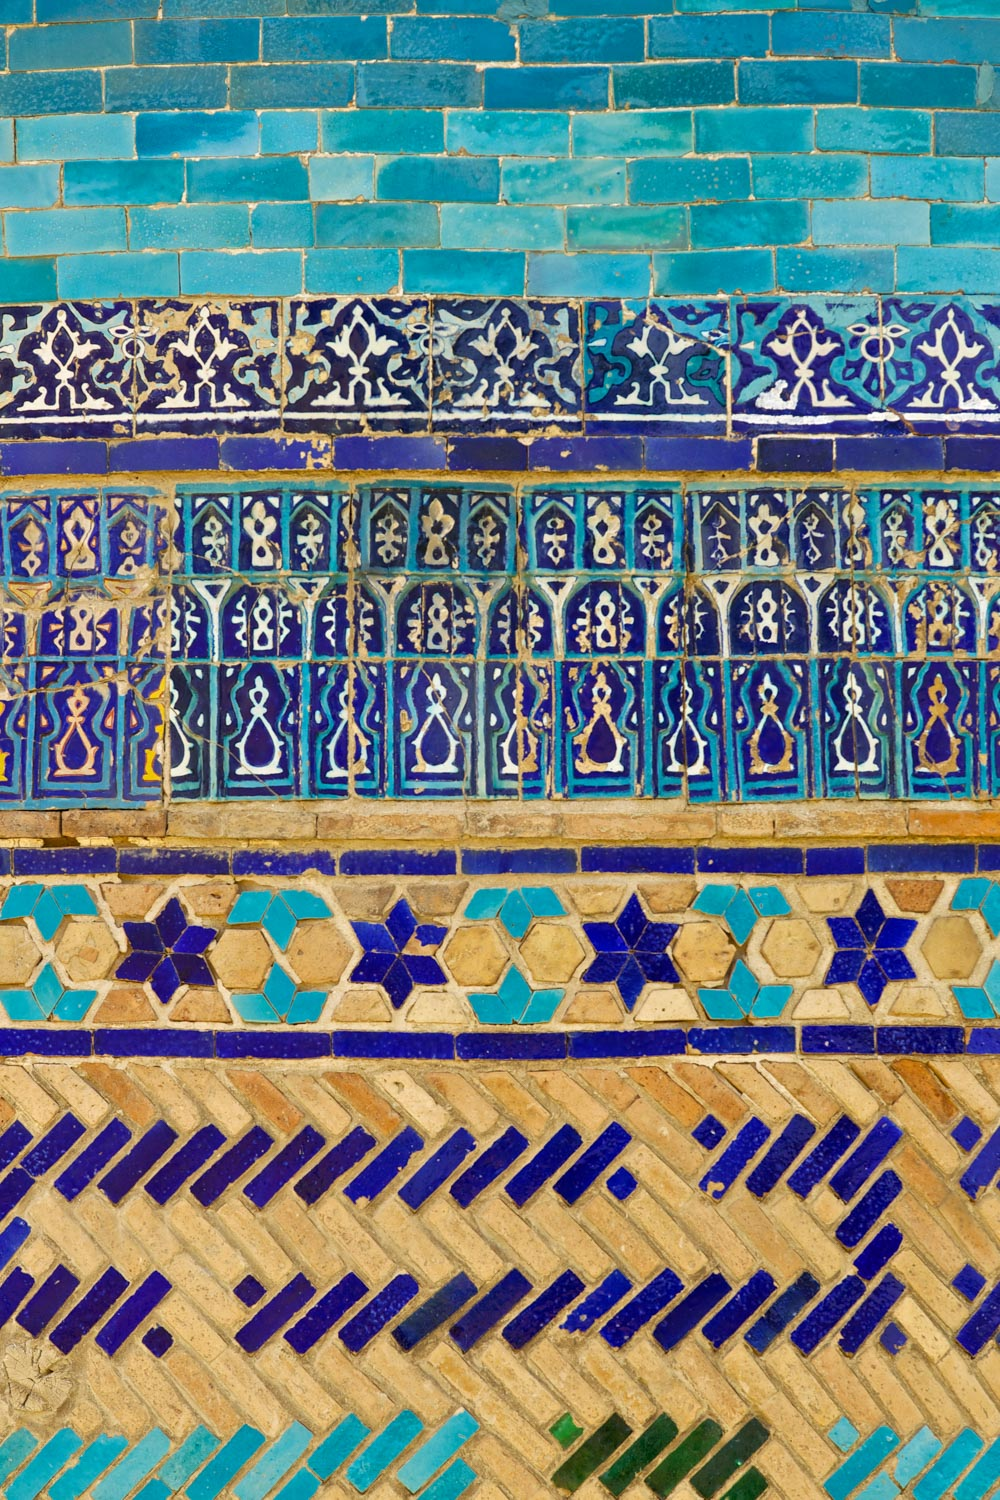 Walls of Shahi Zinda, Samarkand